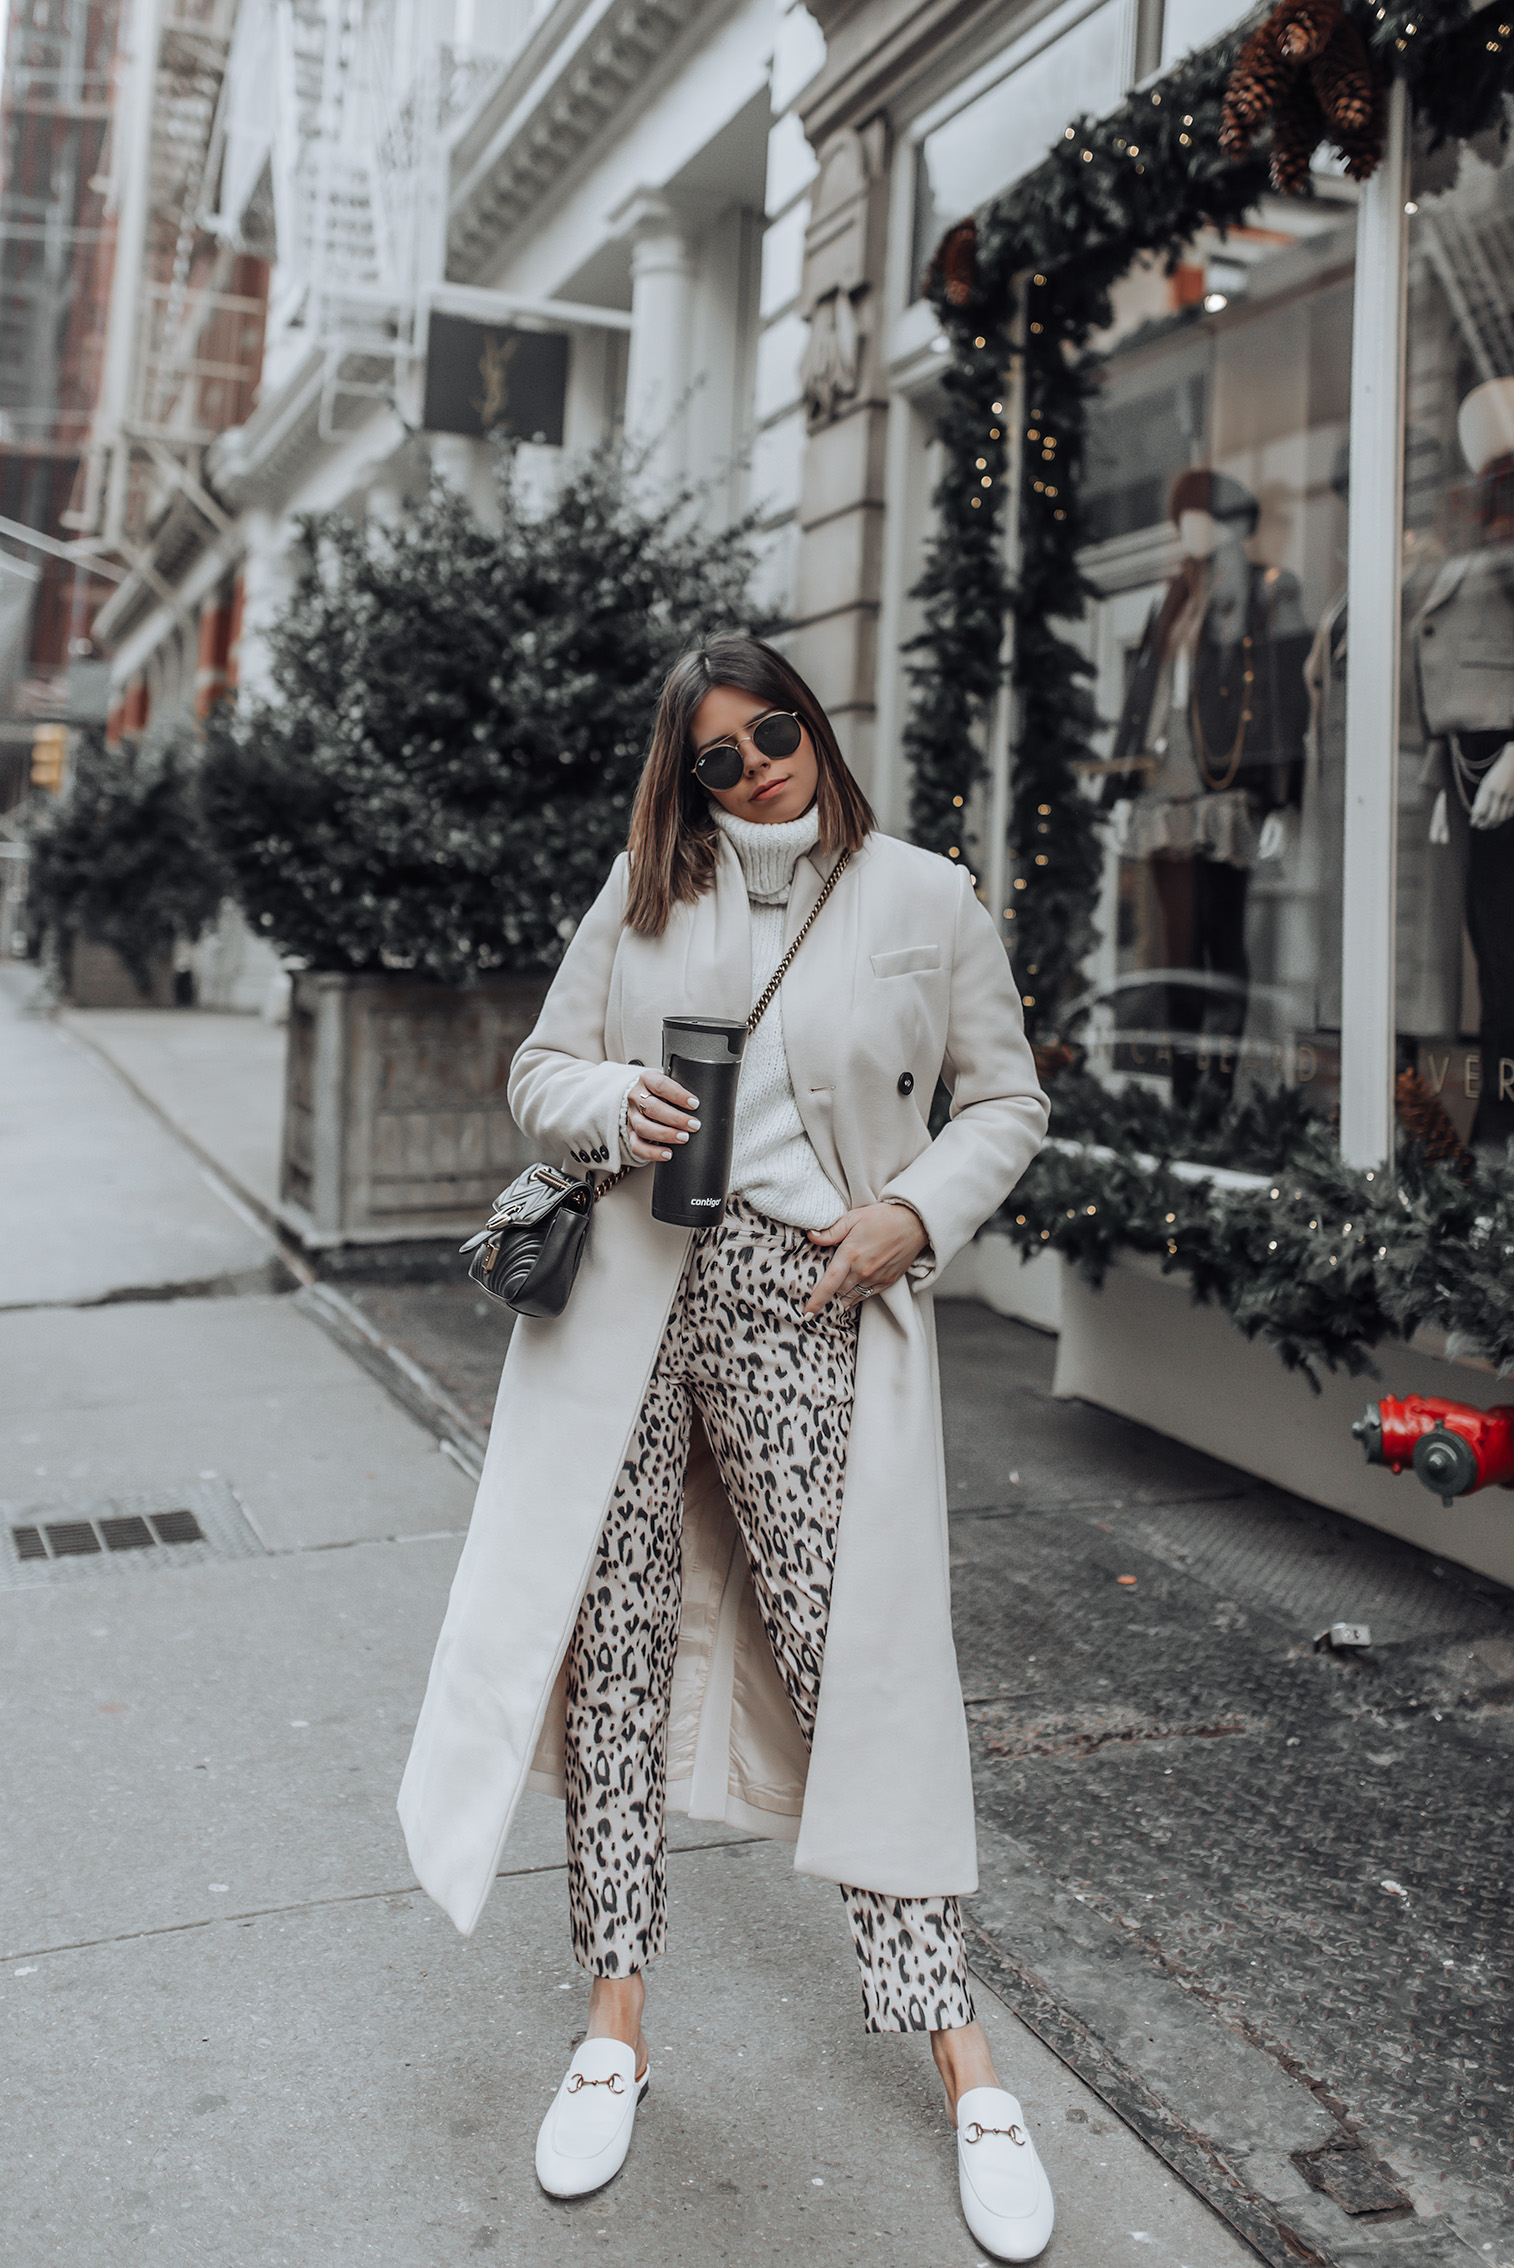 Cozy in leopard |Similar Leopard Pants | Sweater (Mango, similar here) | Ring by & Other Stories | Gucci Princetown | Gucci Bag #ootd #liketkit #style